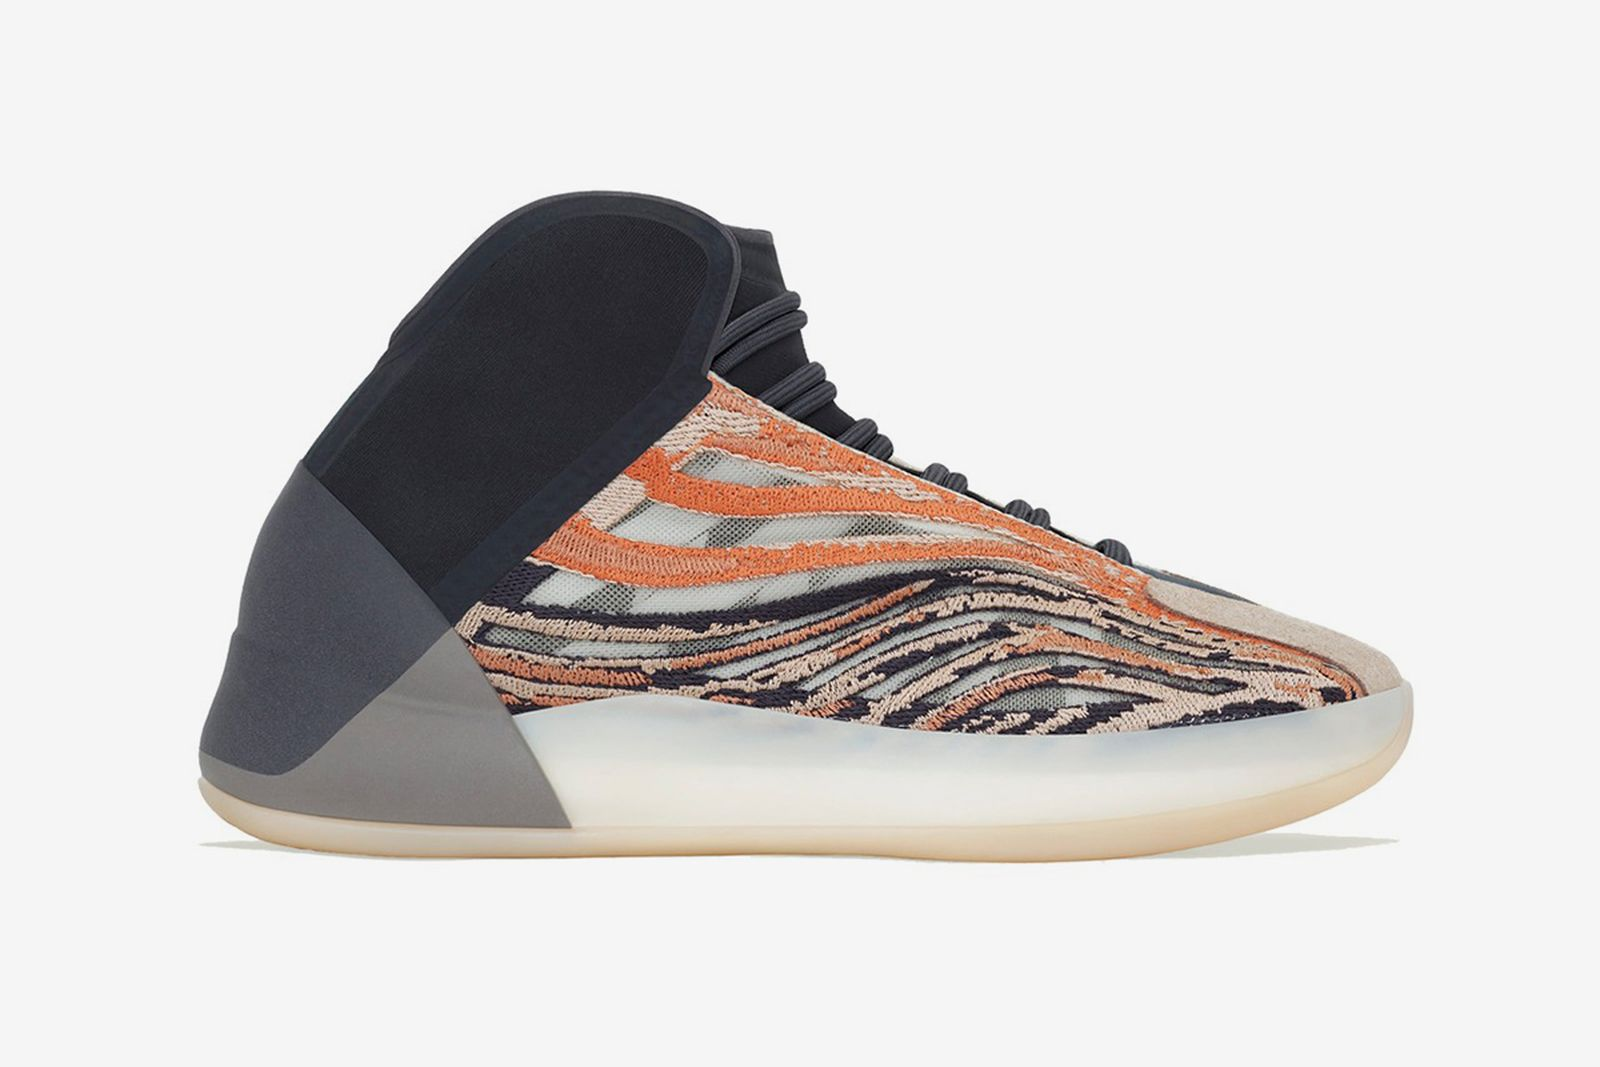 adidas-yeezy-spring-summer-2021-releases-01